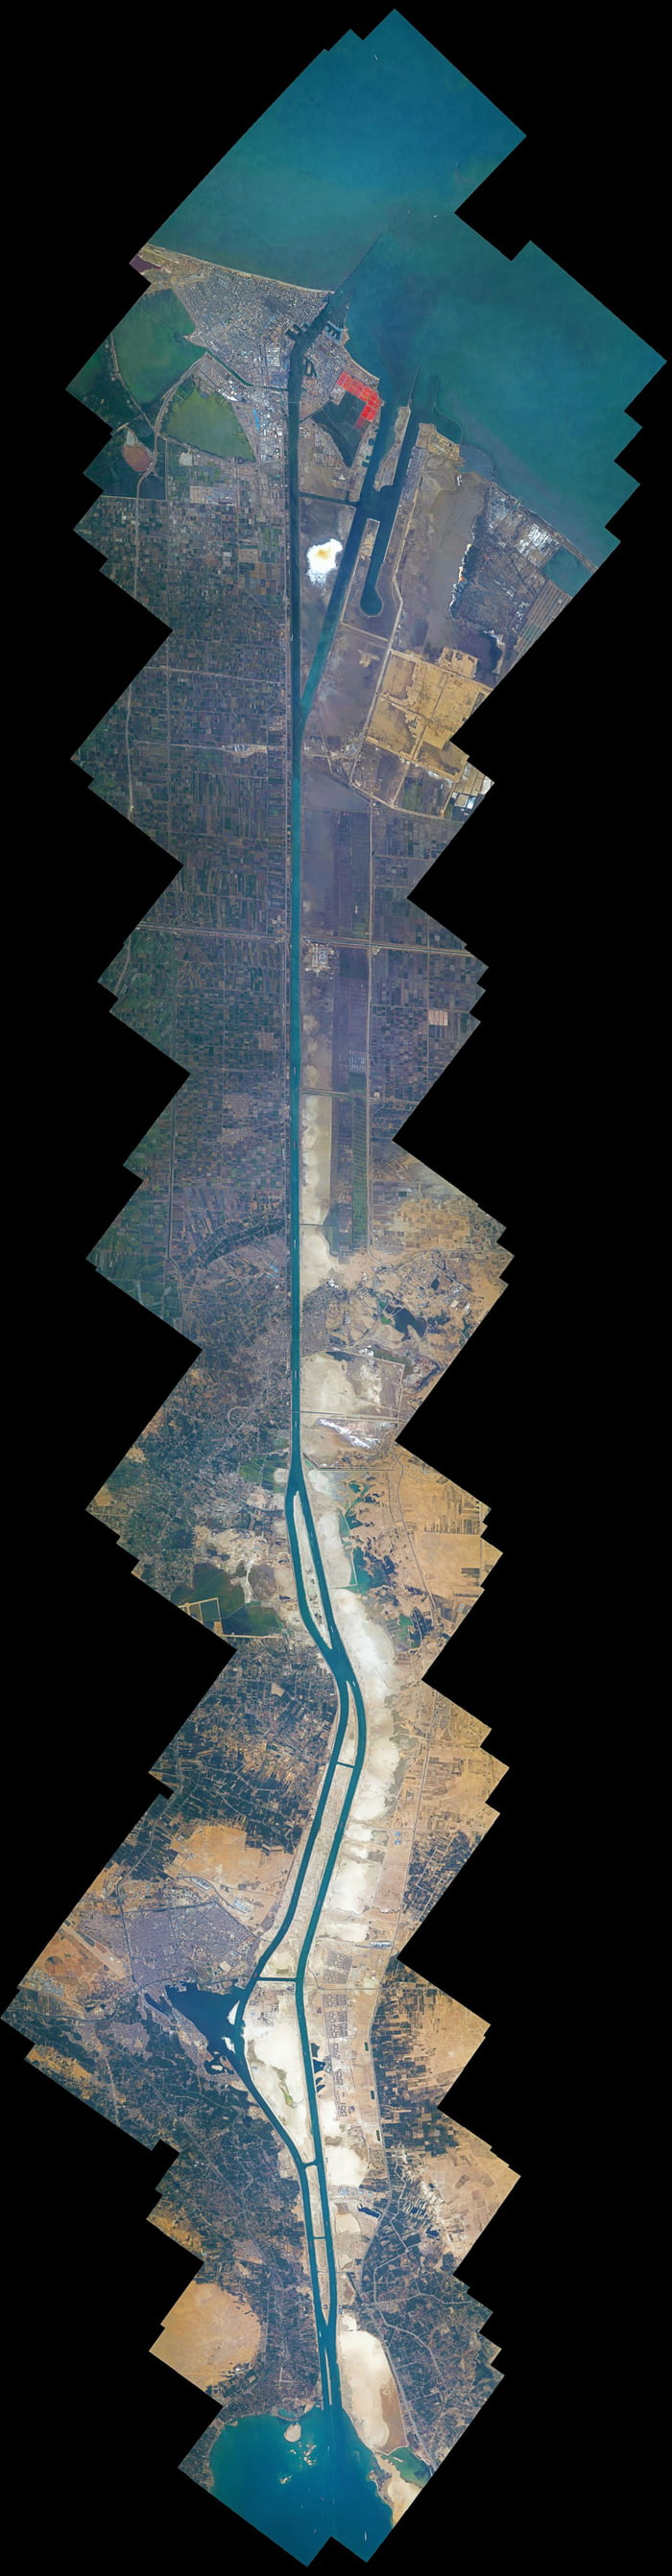 The Suez canal complete - stitched together from 100 pictures with the highest zoom possible.